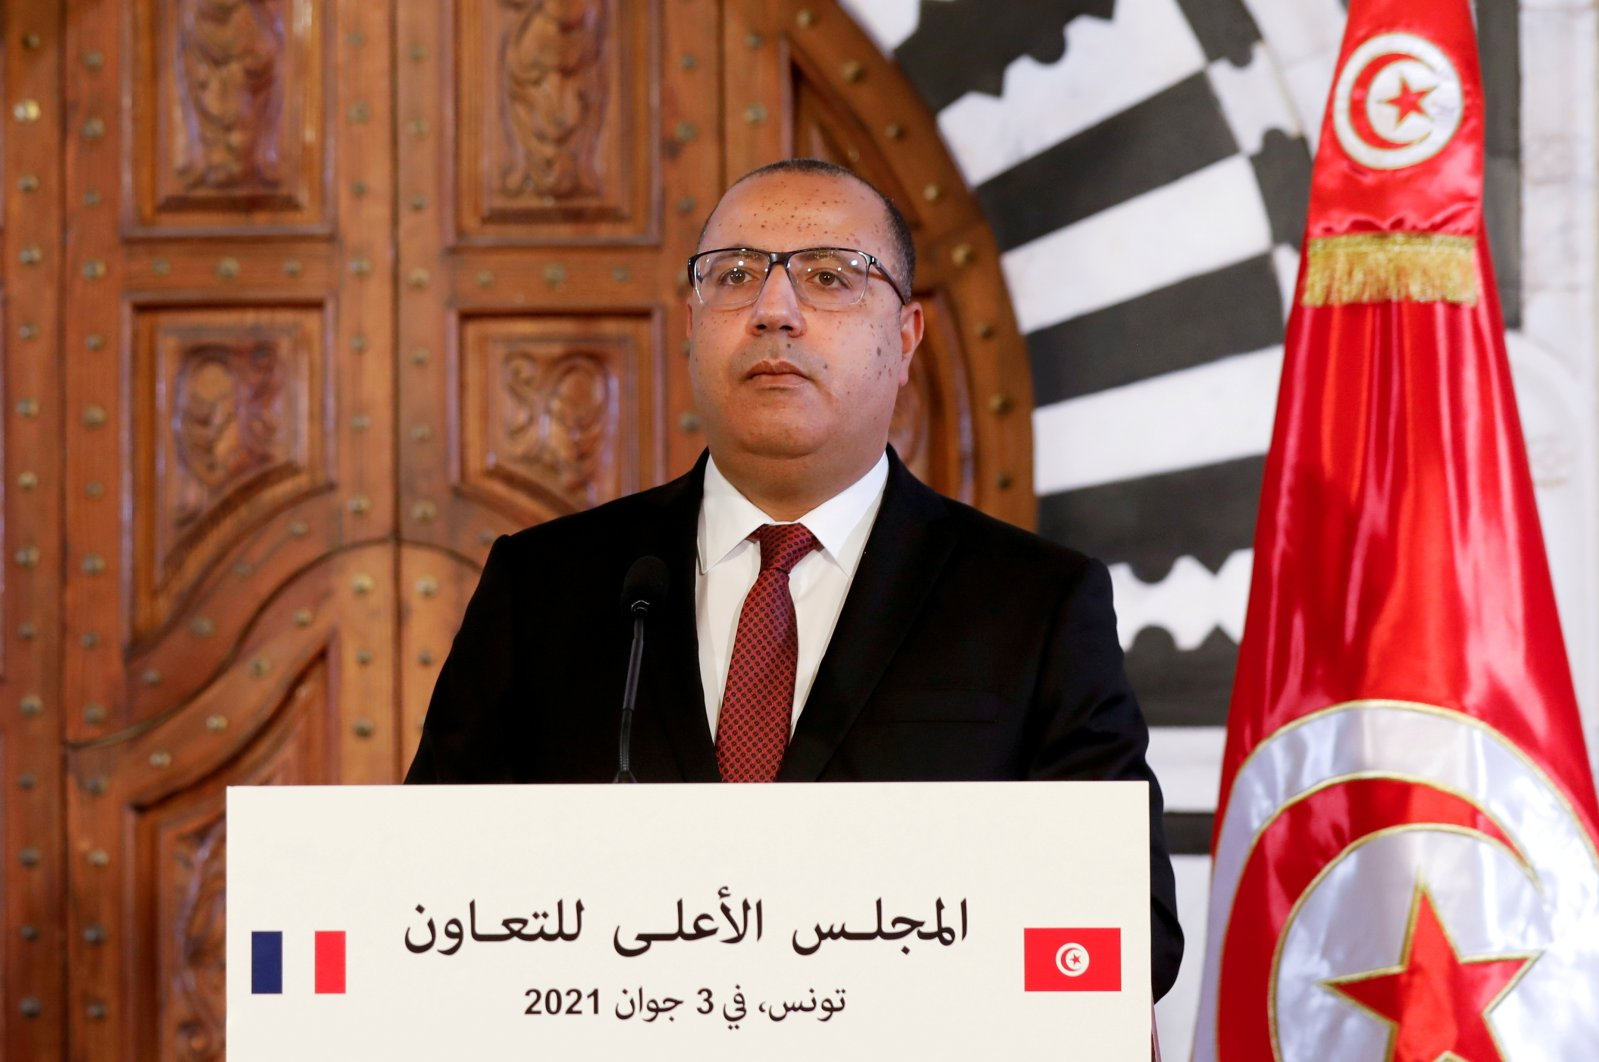 Tunisian Prime Minister Hichem Mechichi appears at a news conference in Tunis, Tunisia, on June 3, 2021. (Reuters Photo)